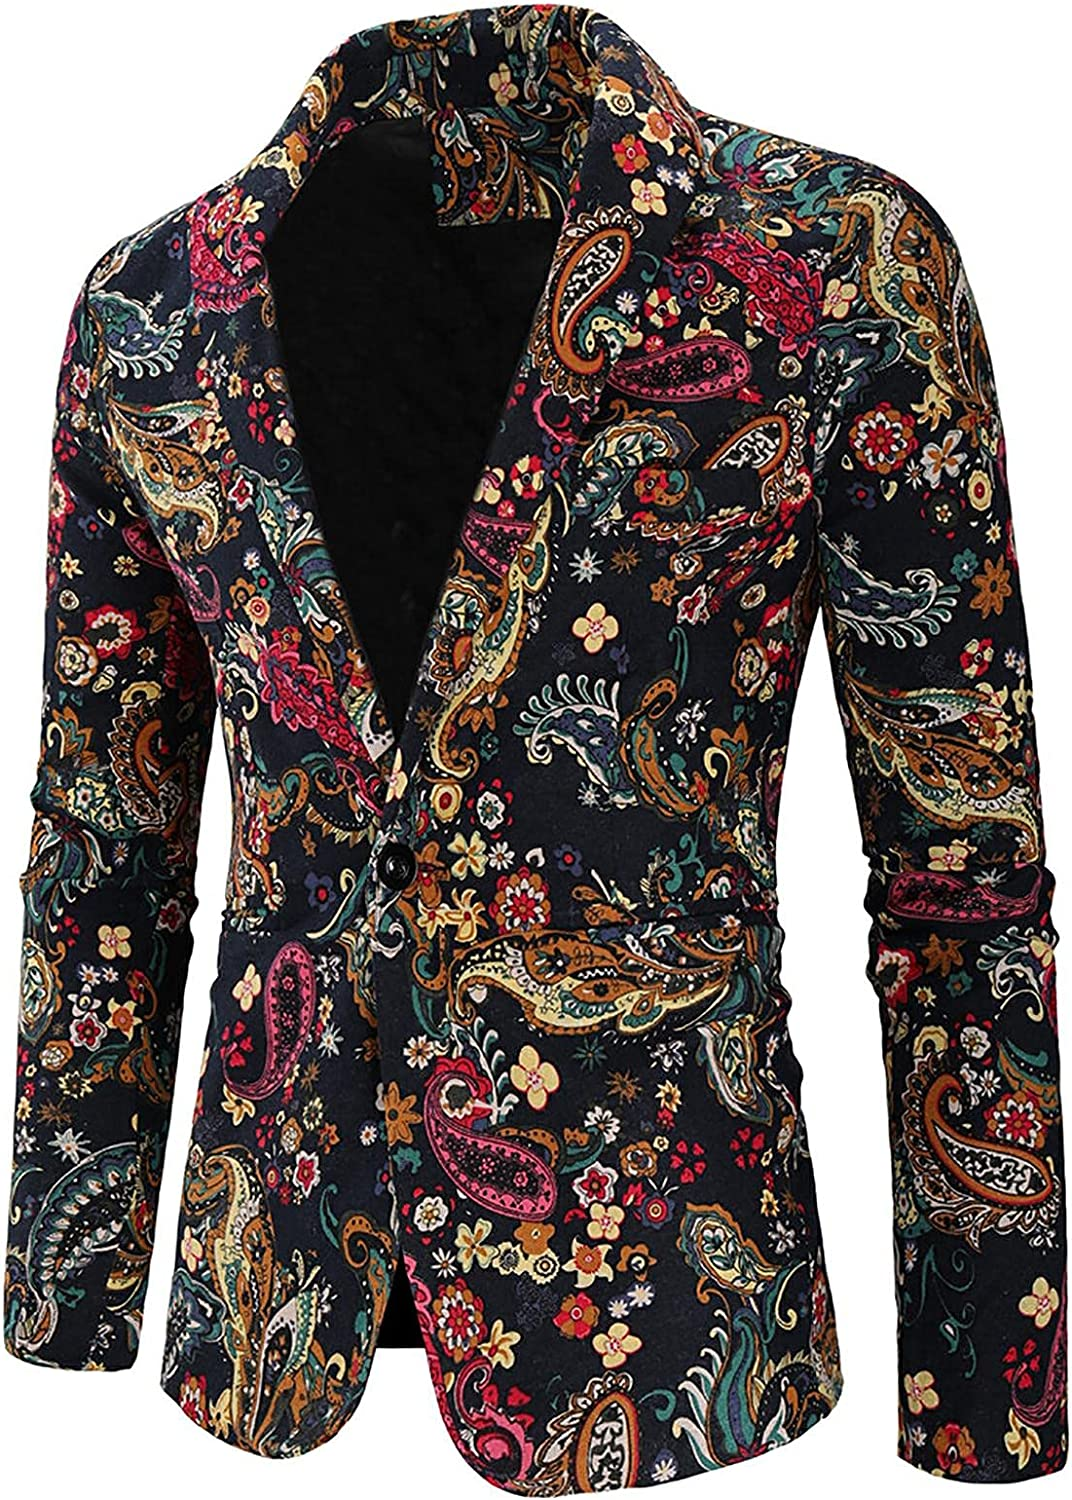 Men's Business Blazer Fashion Personality Printed Casual Slim Suit Formal Dress Coat Jacket for Wedding and Party